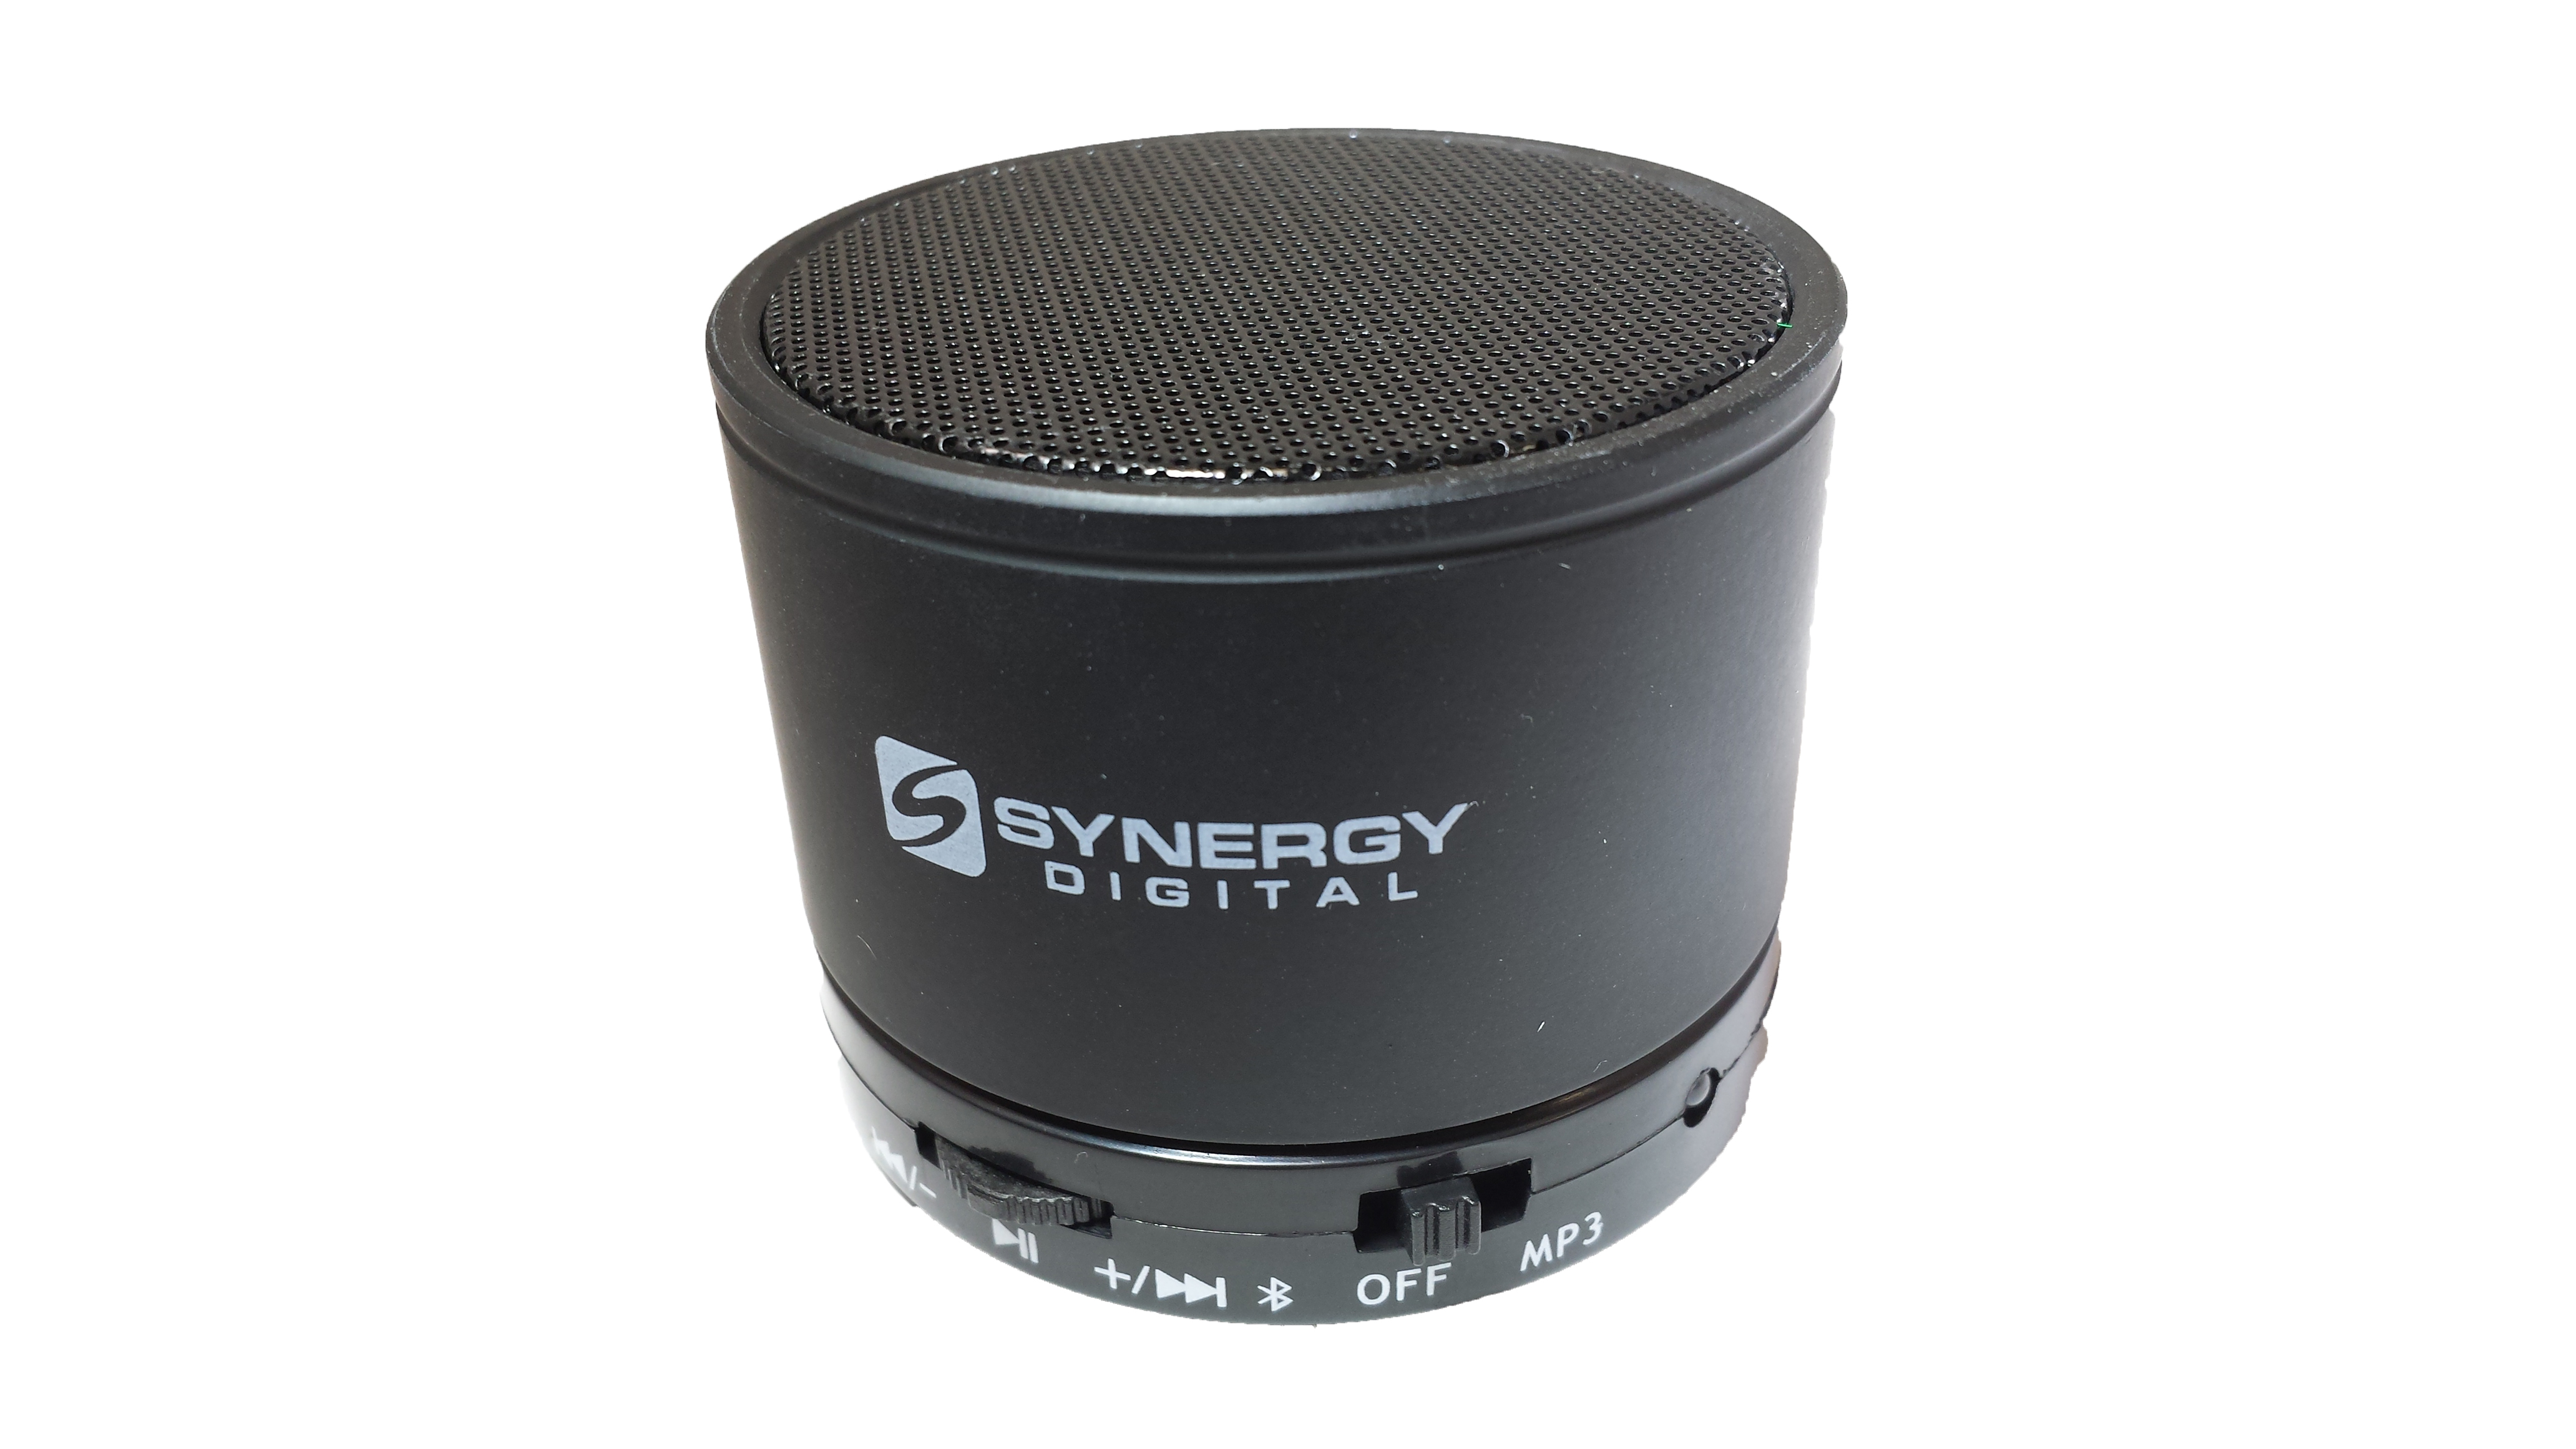 Synergy Digital® SDEBS-007 Portable Wireless Bluetooth Speaker With Built-in Microphone & 4 Hour Rechargeable Internal Battery (Black) - For Cellphones and Other Bluetooth Enabled Devices